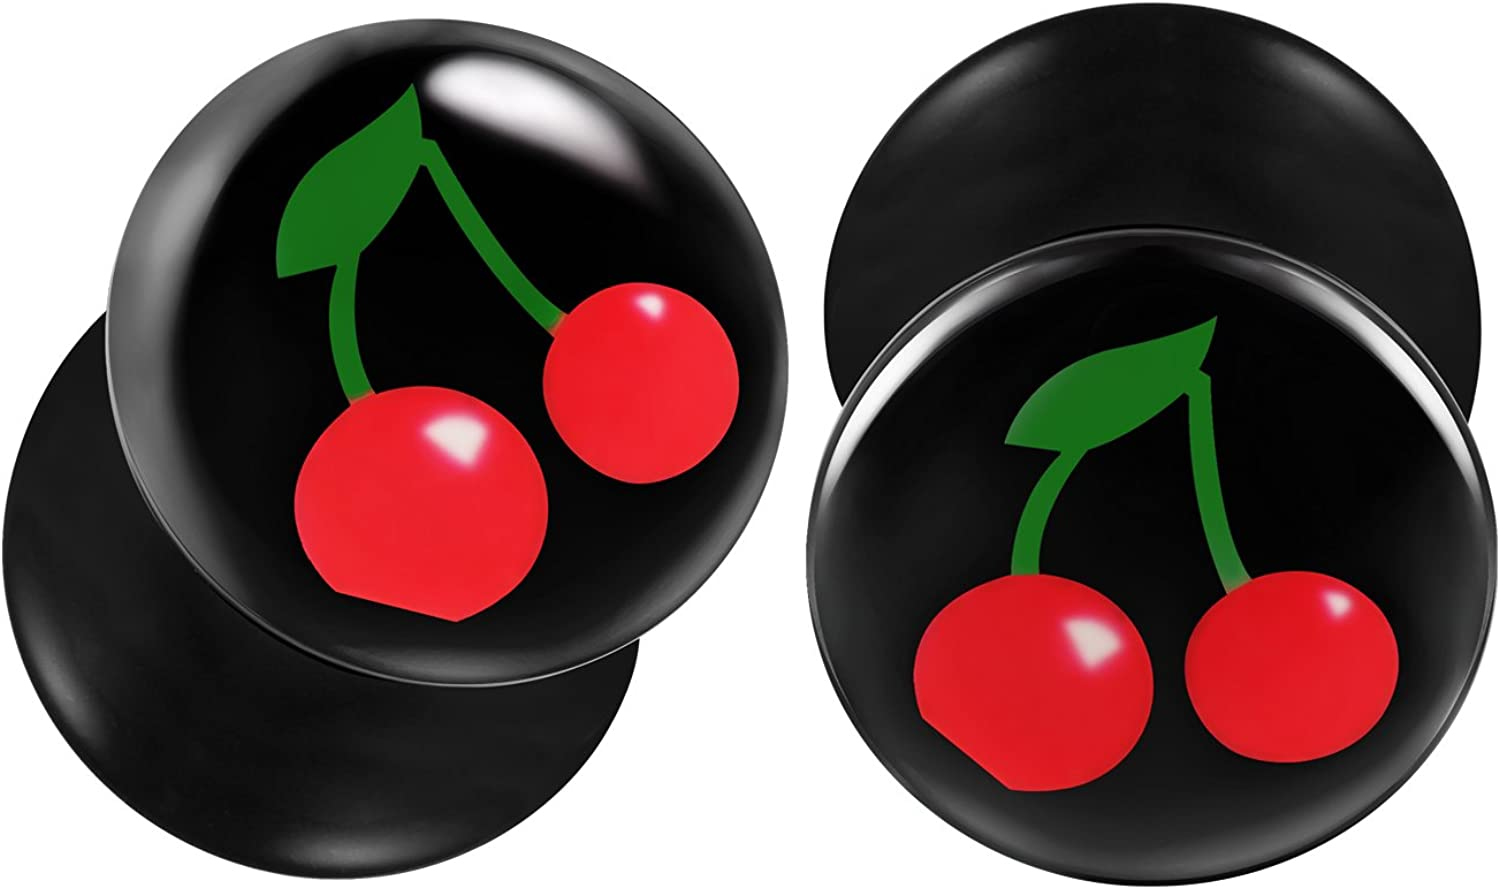 BIG GAUGES Pair of Black Acrylic Red Cherry Double Flared Piercing Jewelry Ear Stretcher Plugs Flesh Earring Lobe